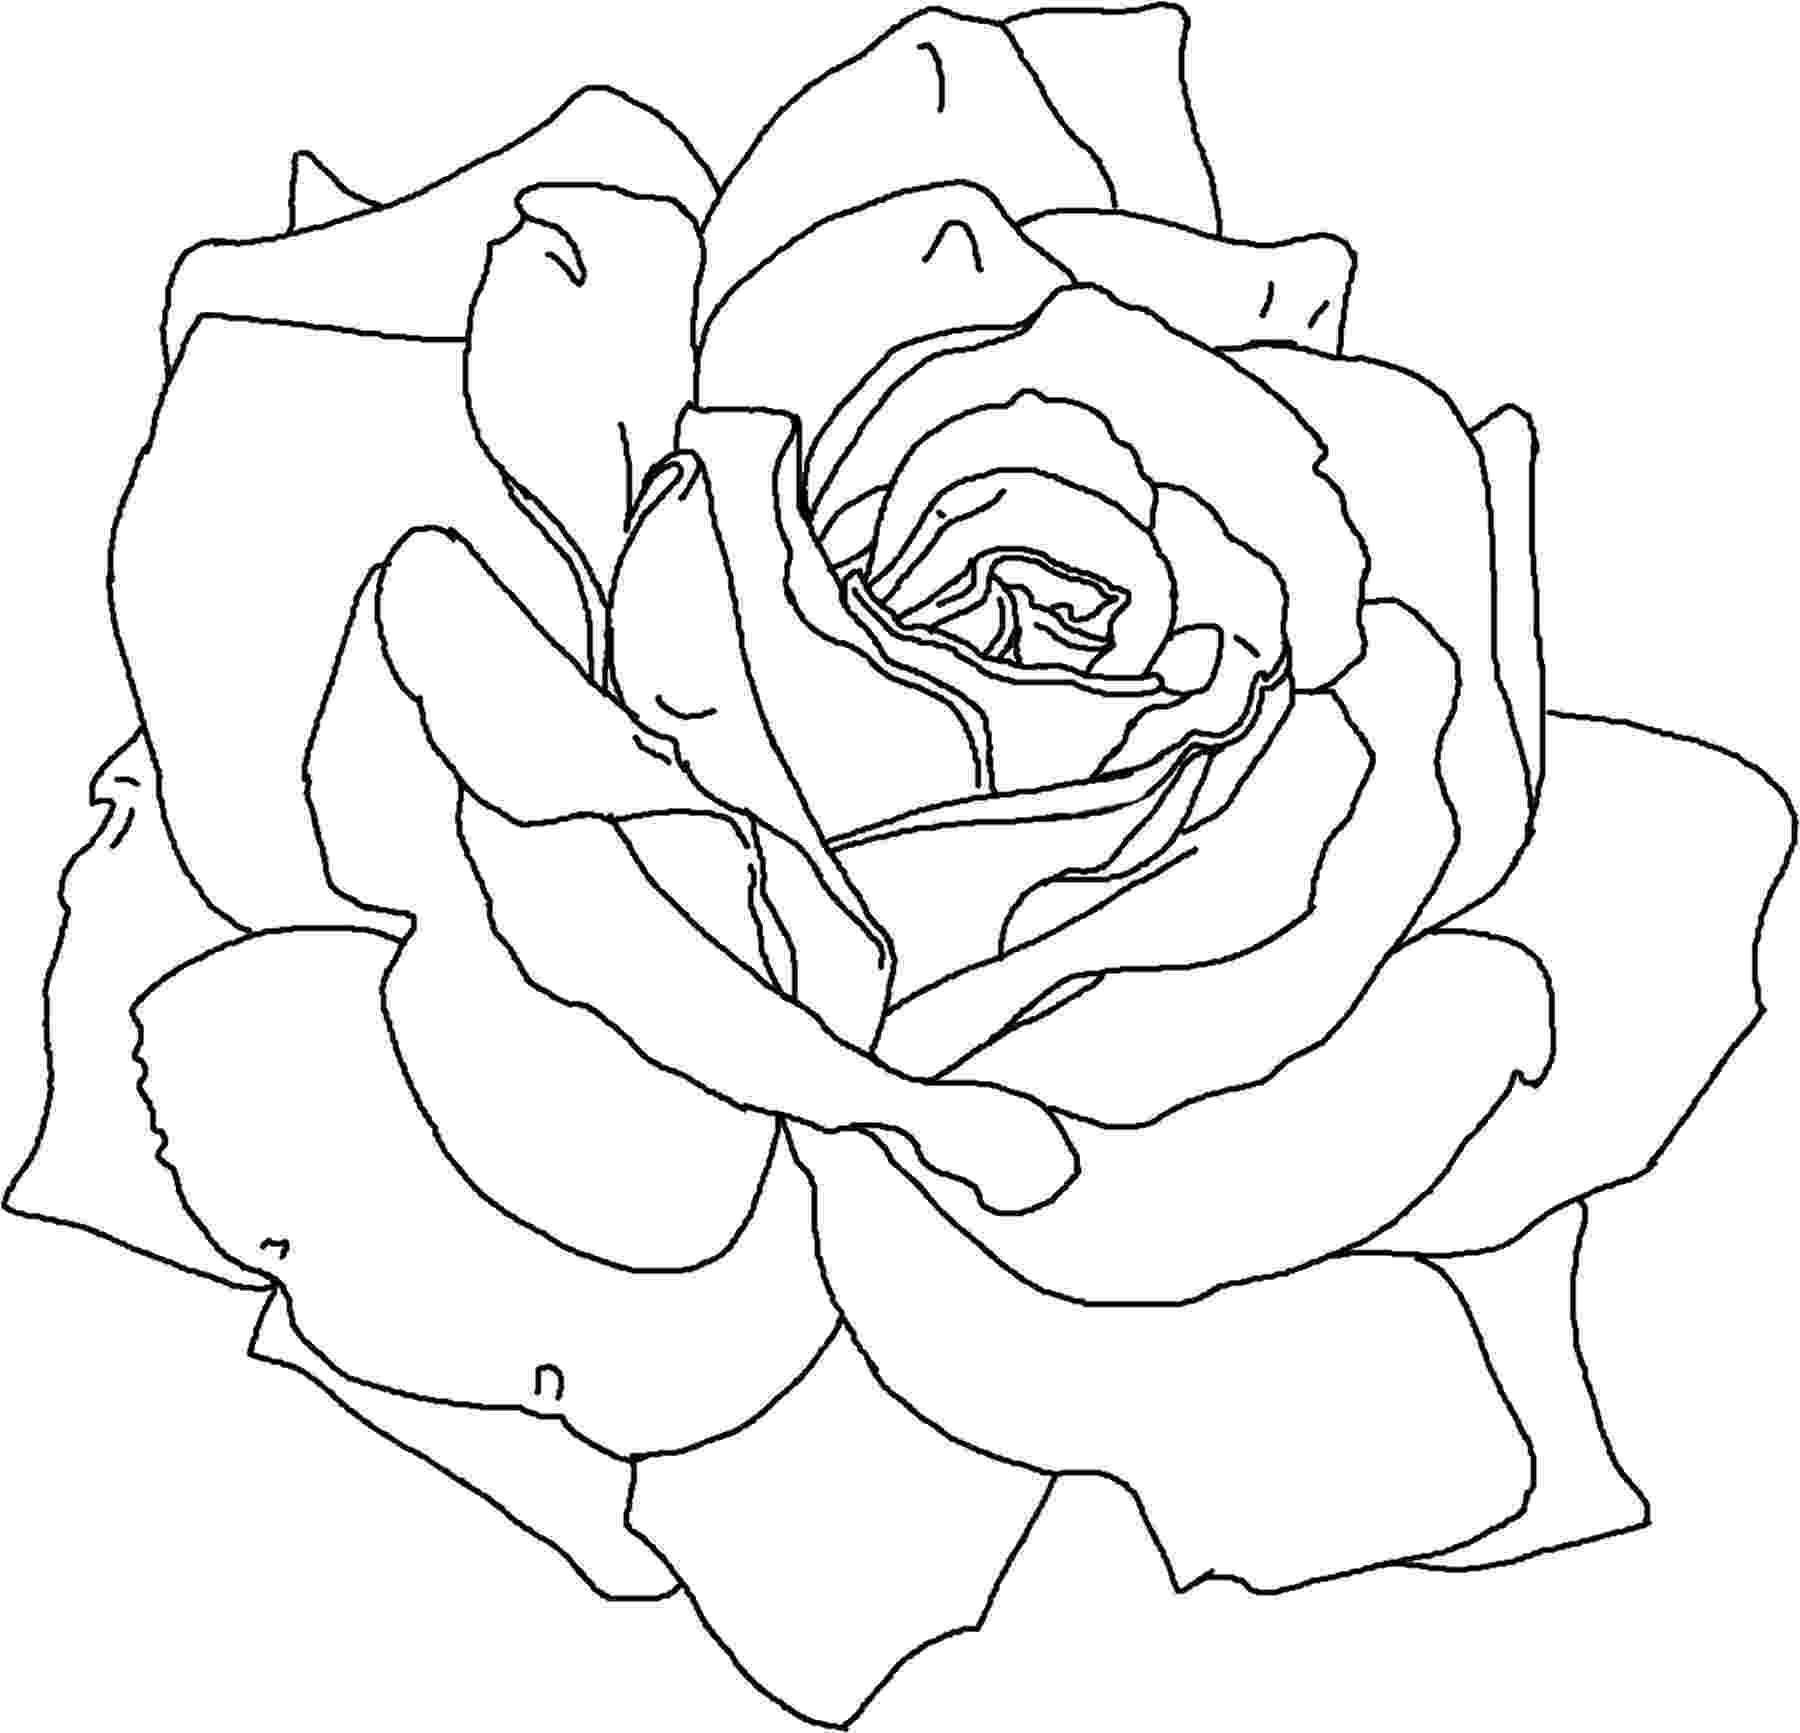 pics of roses to color free printable flower coloring pages for kids best pics color to roses of